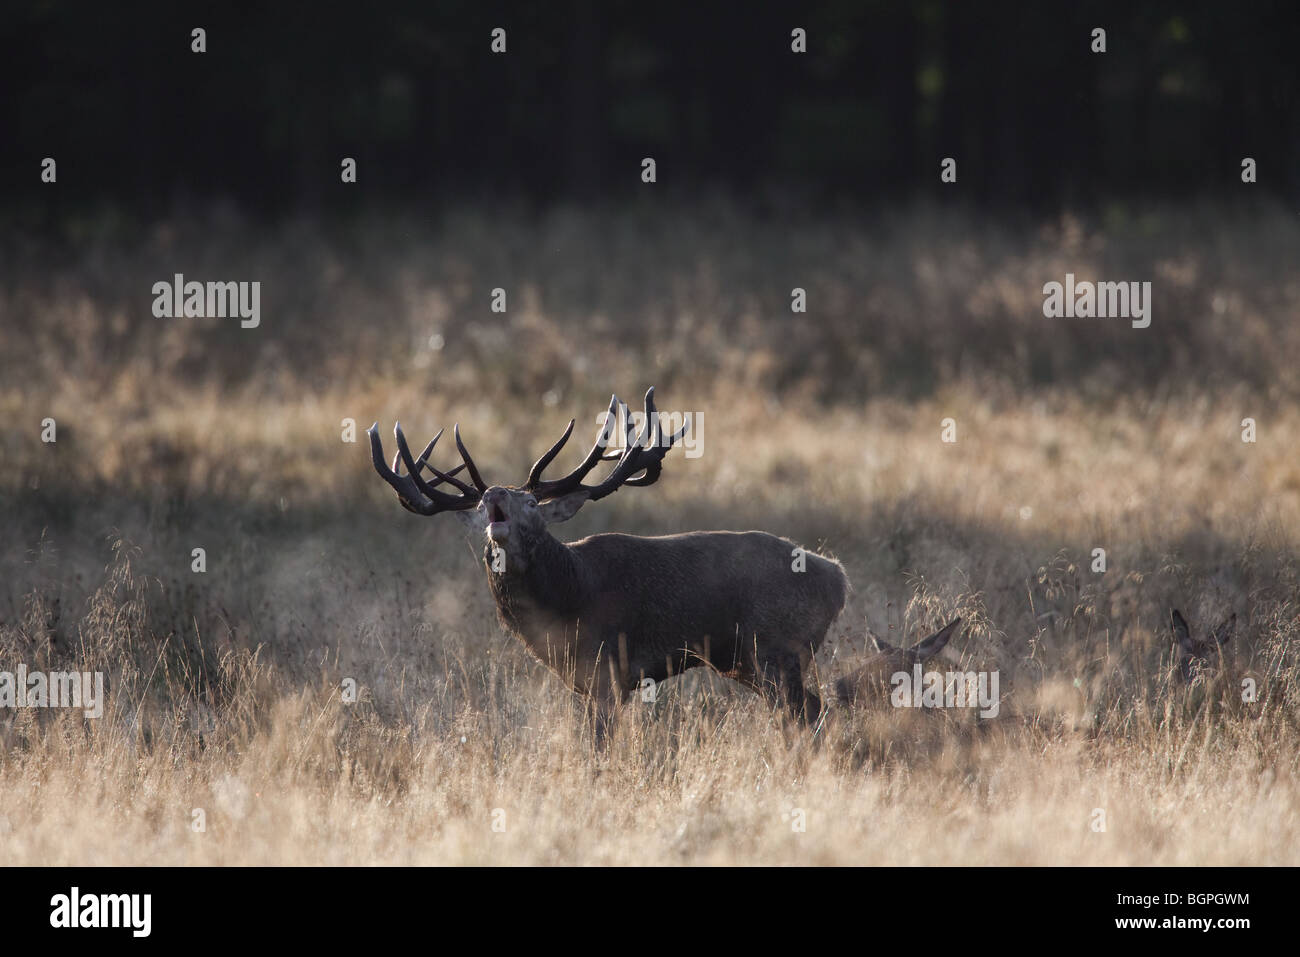 Red deer (Cervus elaphus) stag herding hinds at forest edge during the rut in autumn, Denmark Stock Photo